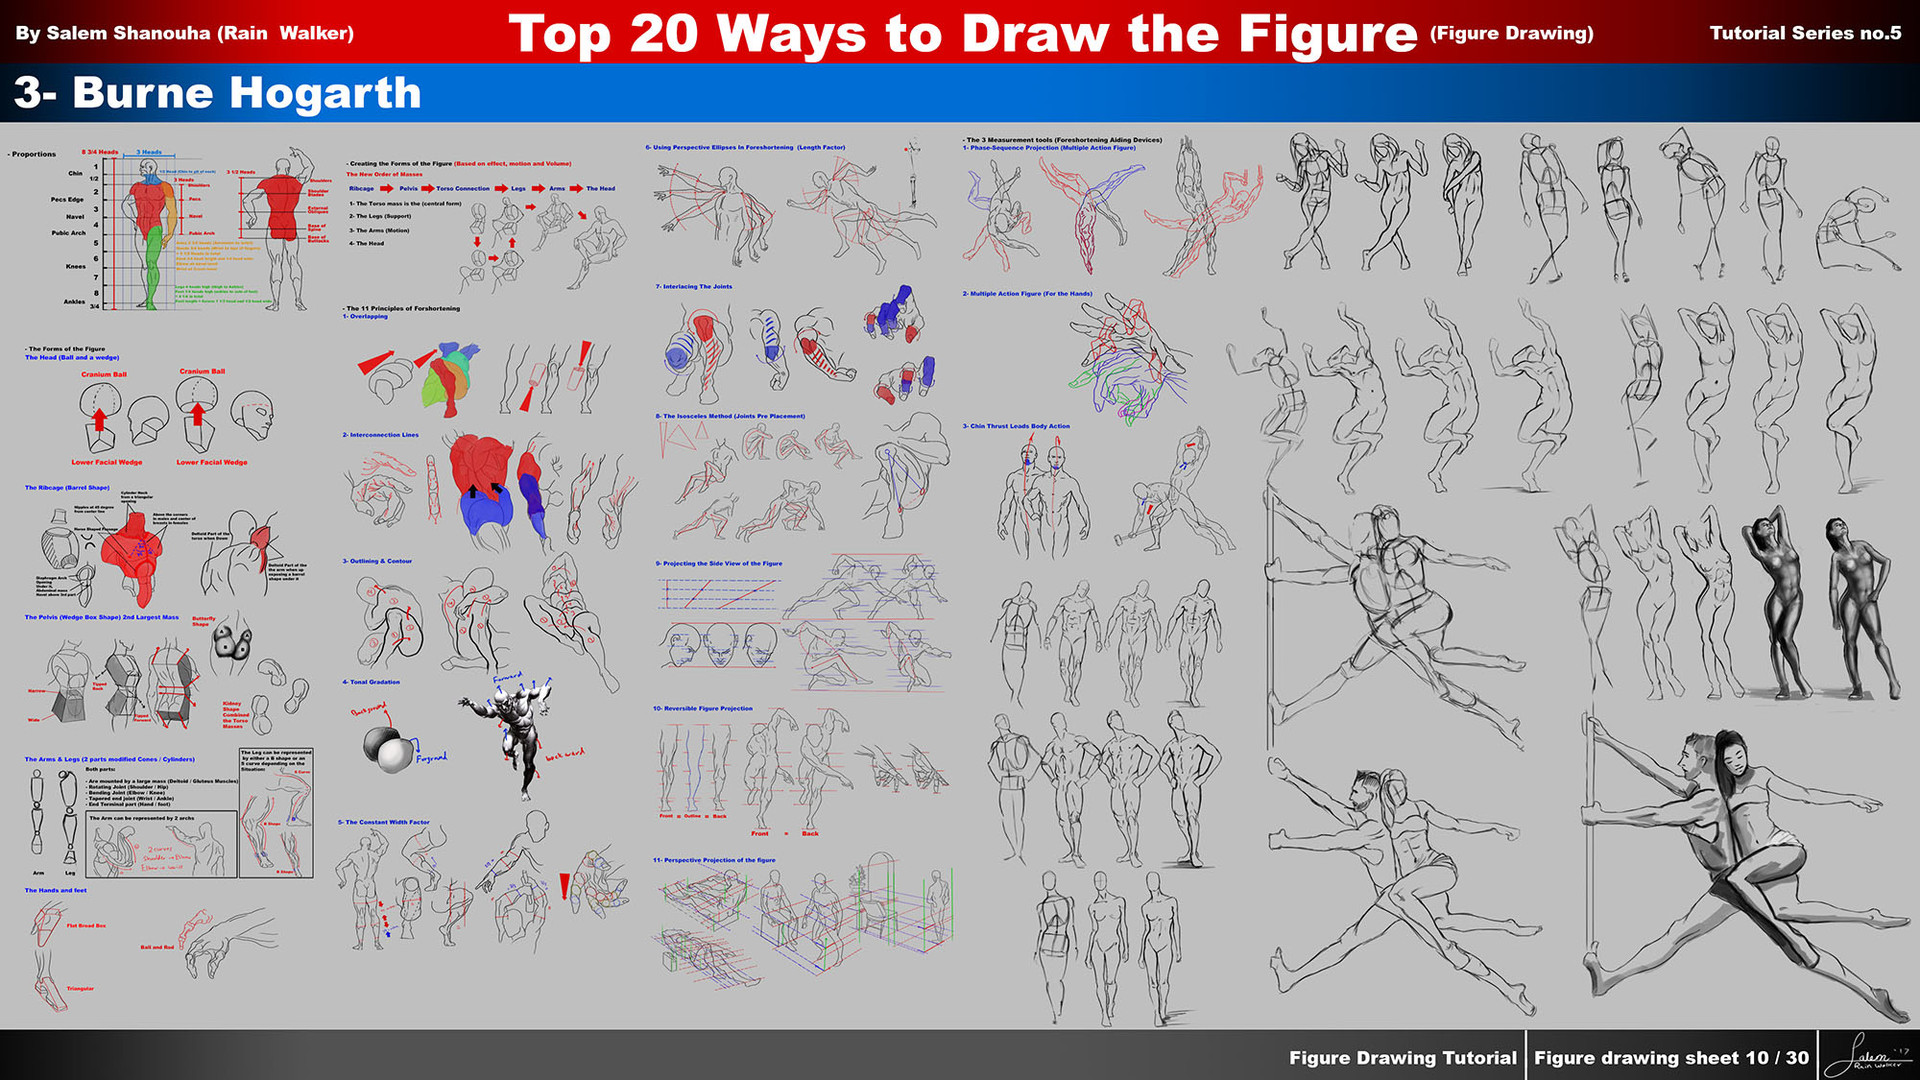 ArtStation - Top 20 ways to draw the figure Chapter 3 (Burne Hogarth ...